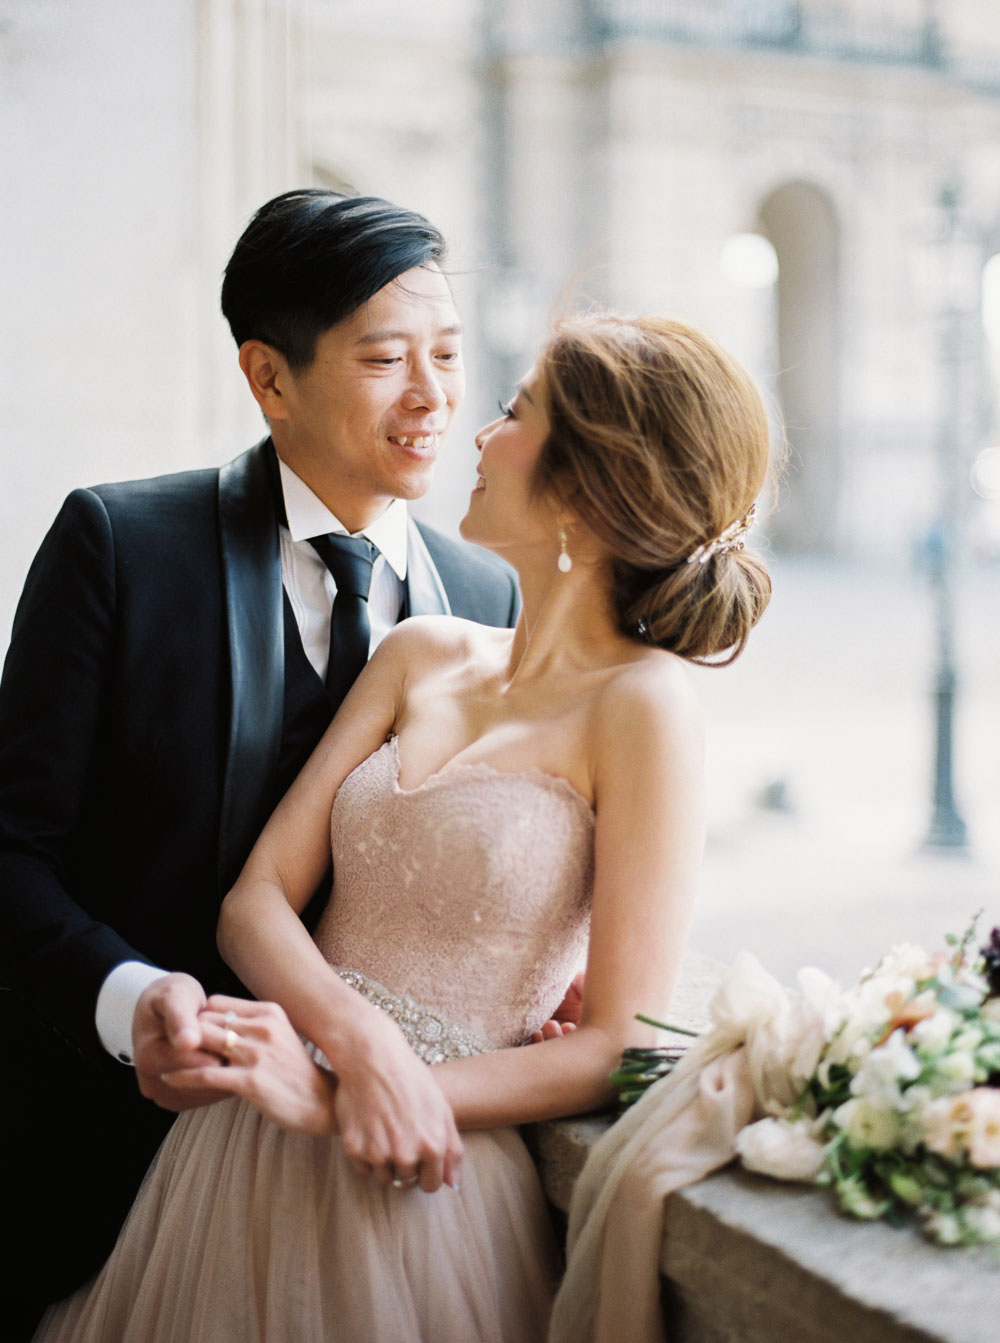 Paris wedding photographer Paris elopement wedding ceremony lara lam